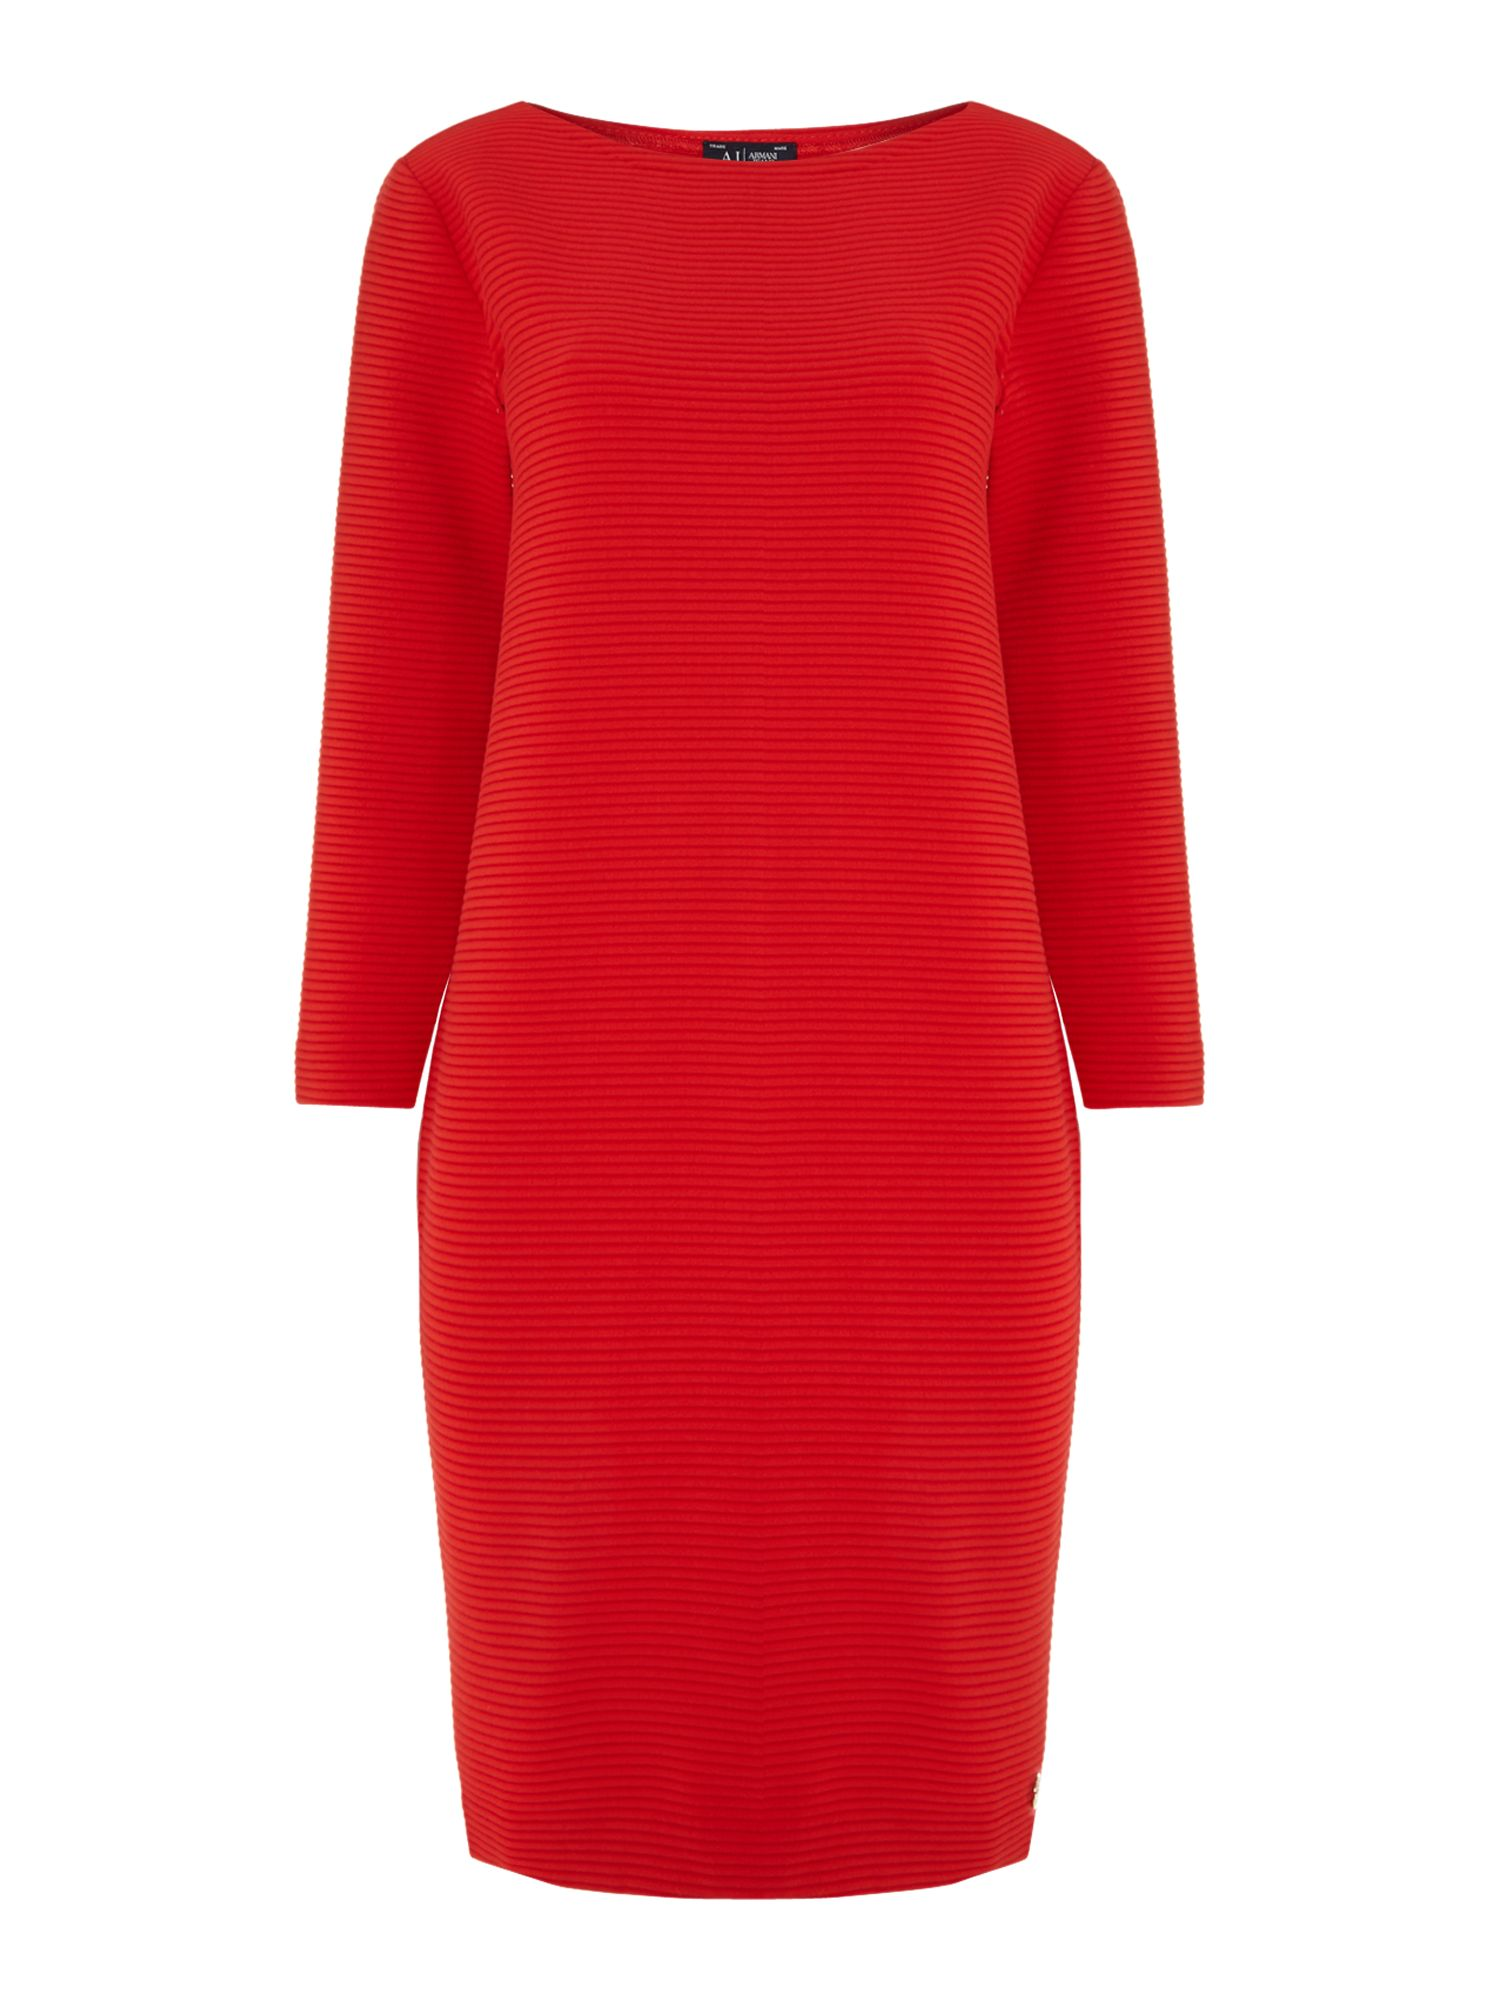 3/4 sleeve ribbed dress